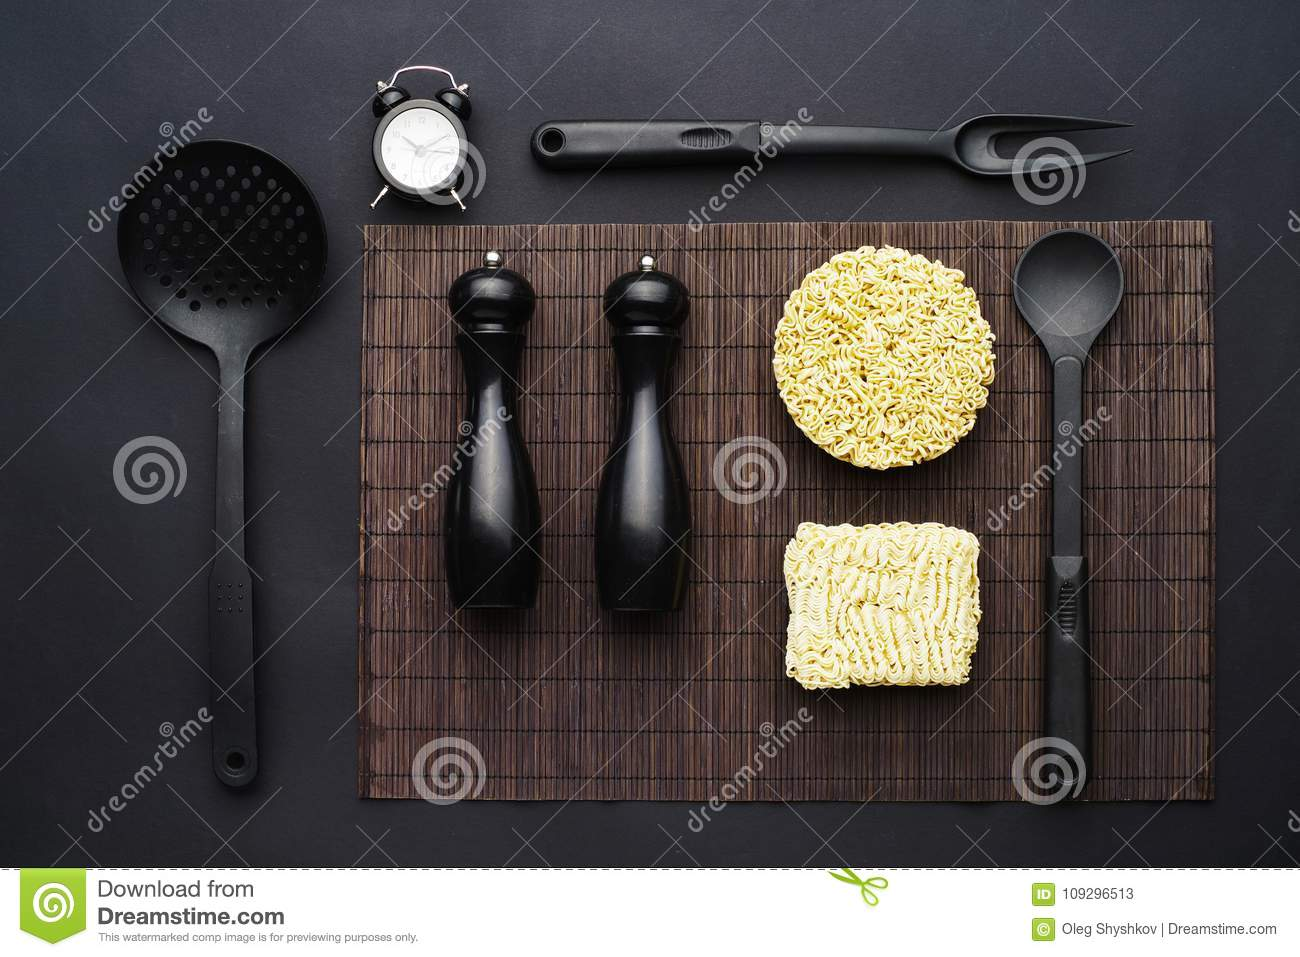 Layout Of Kitchen Accessories And Instant Noodles On A Black Background Top View Stock Image Image Of Time Menu 109296513